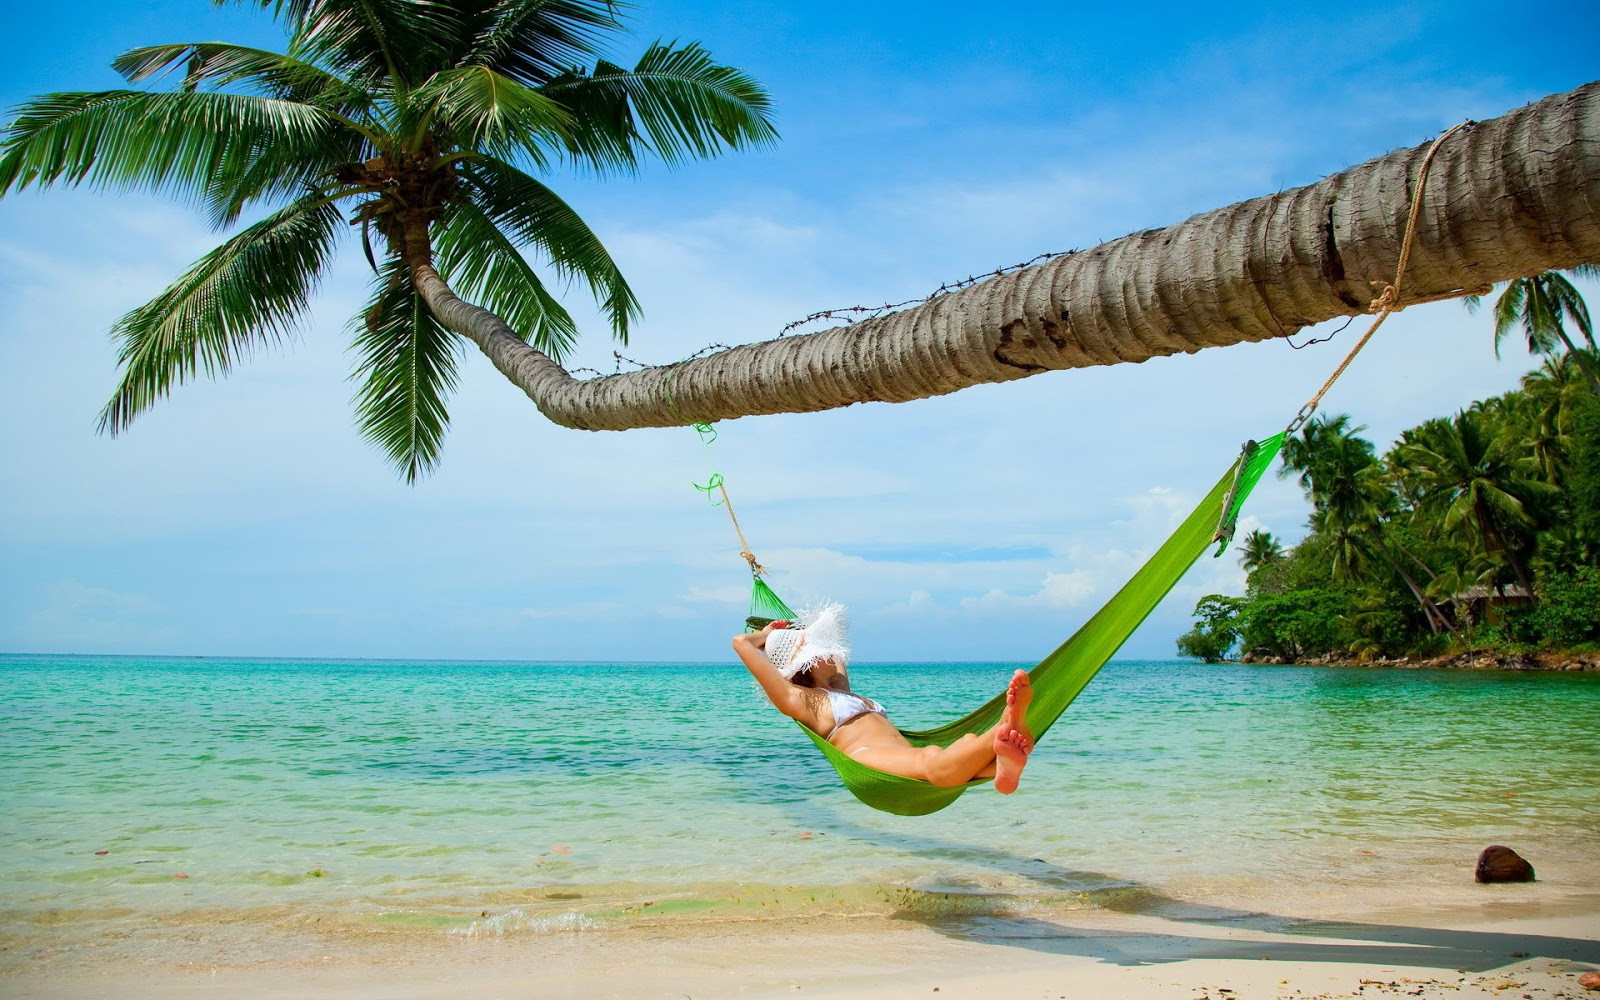 Hamaca En La Playa Brillante Woman Relaxing In Hammock Wallpapers 500 Collection Hd Of 48  Lujo Hamaca En La Playa